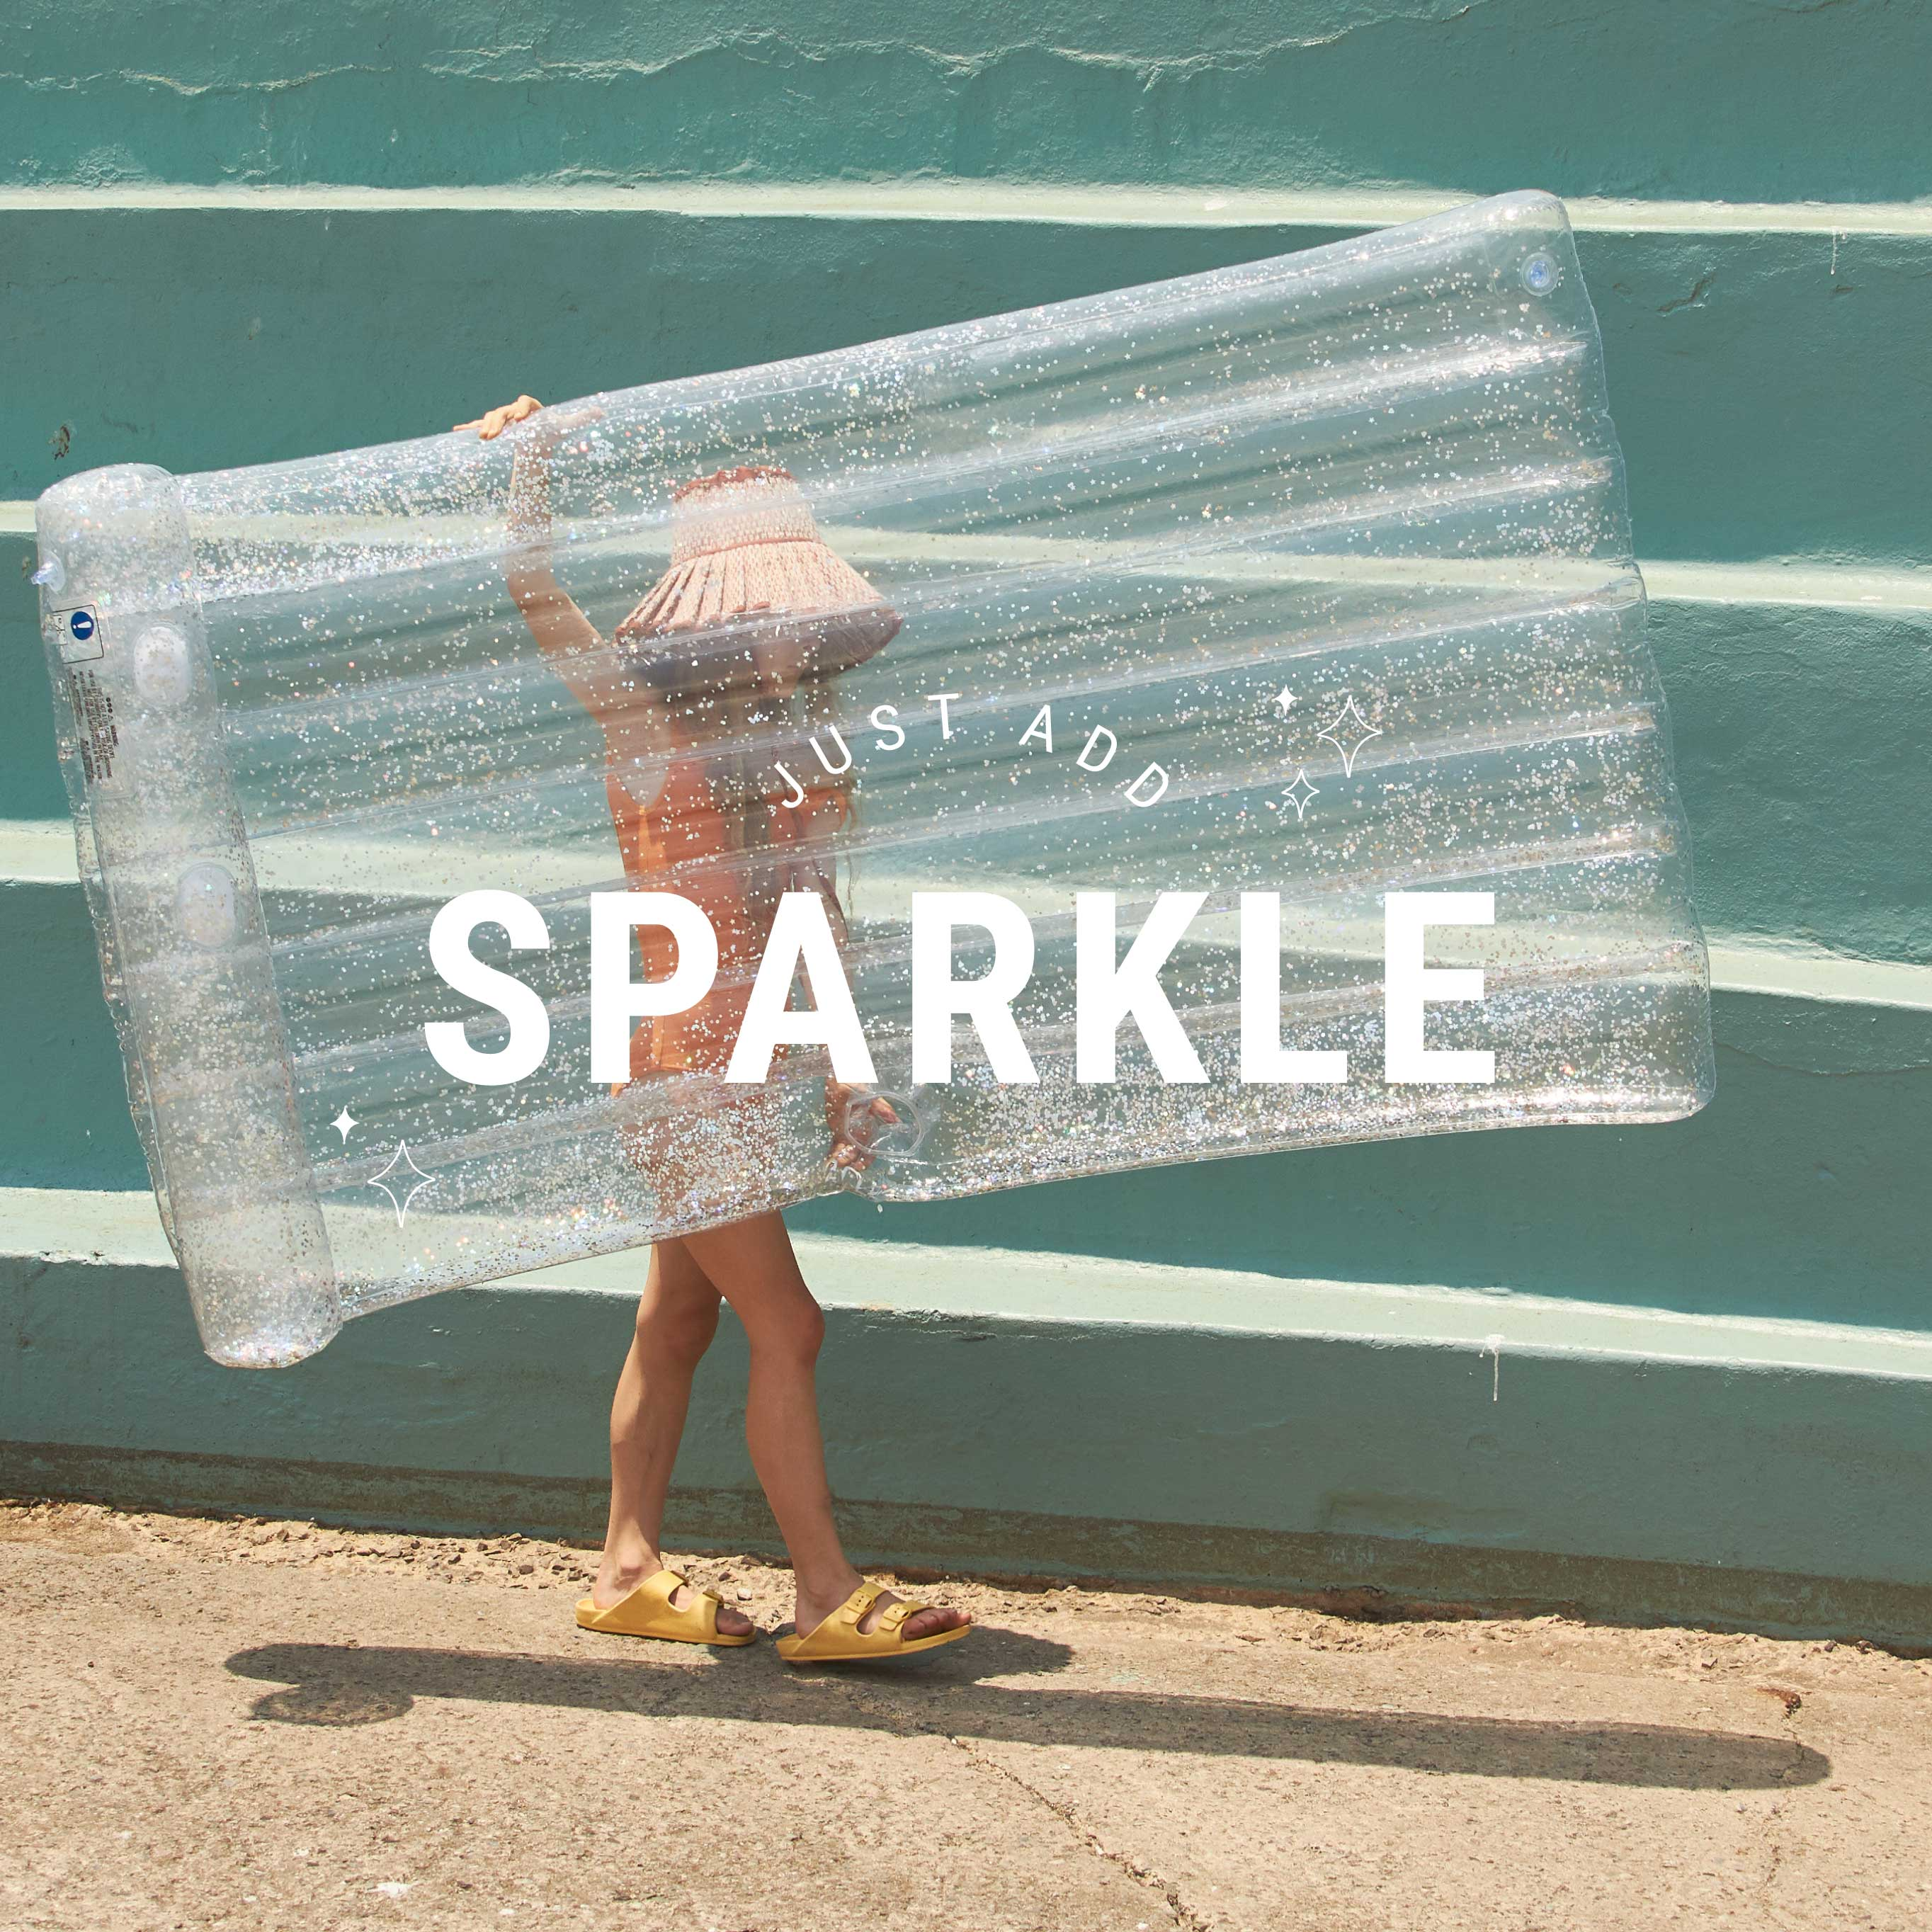 Just add Sparkle